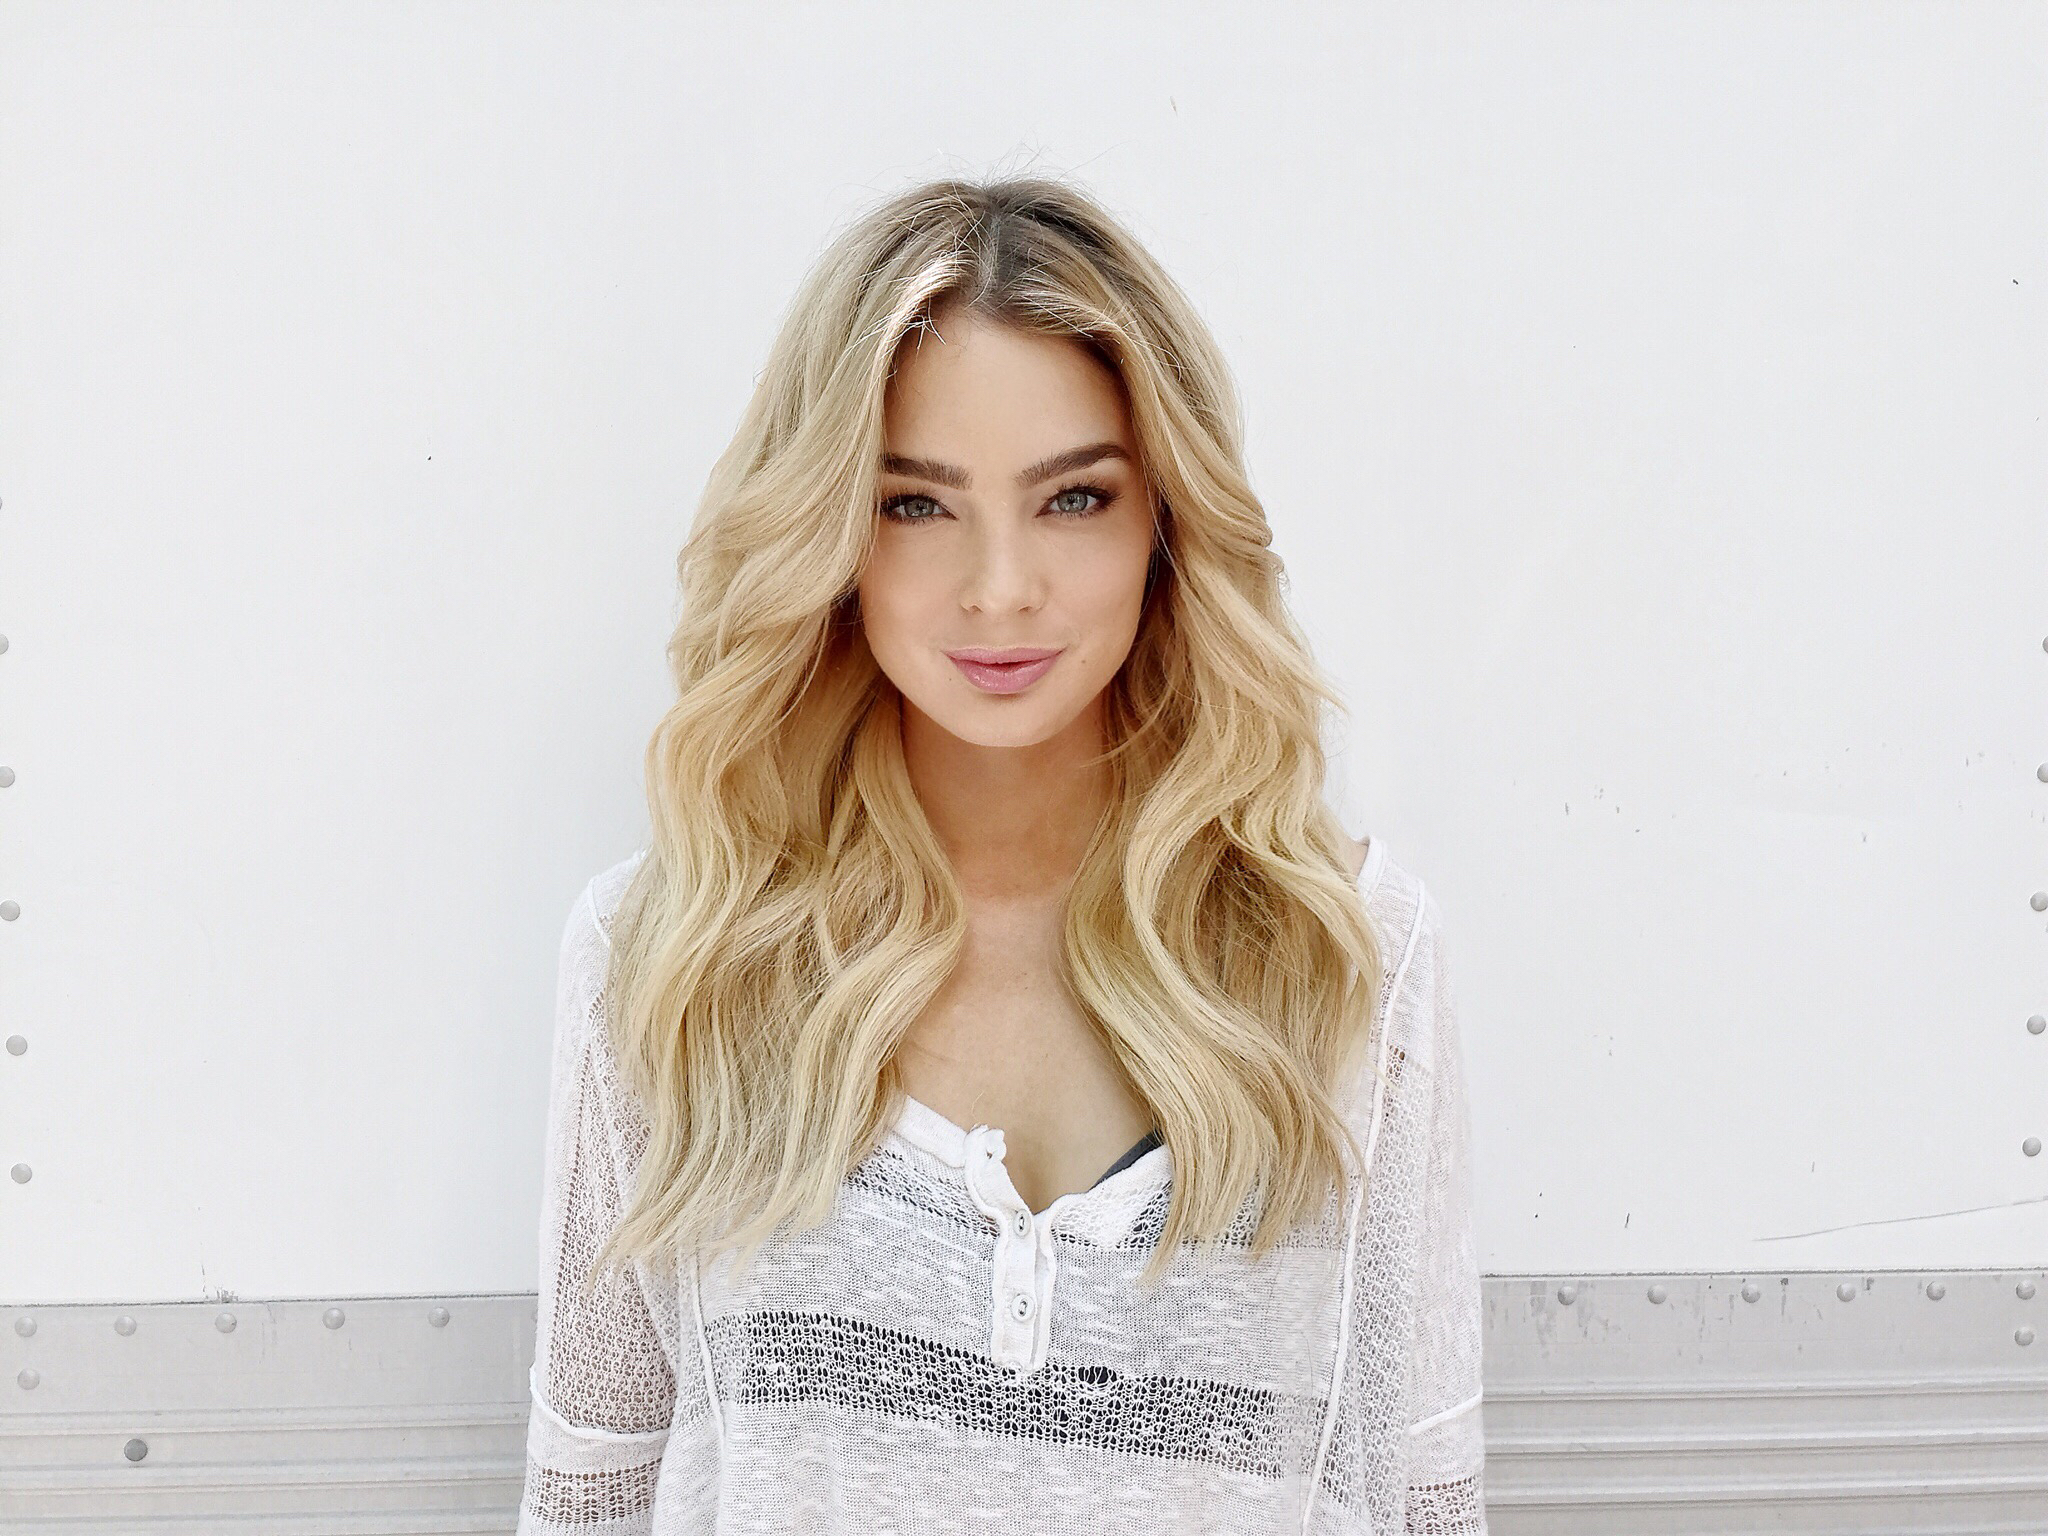 Clip-In Extensions gave this fine, shoulder length hair length and fullness.